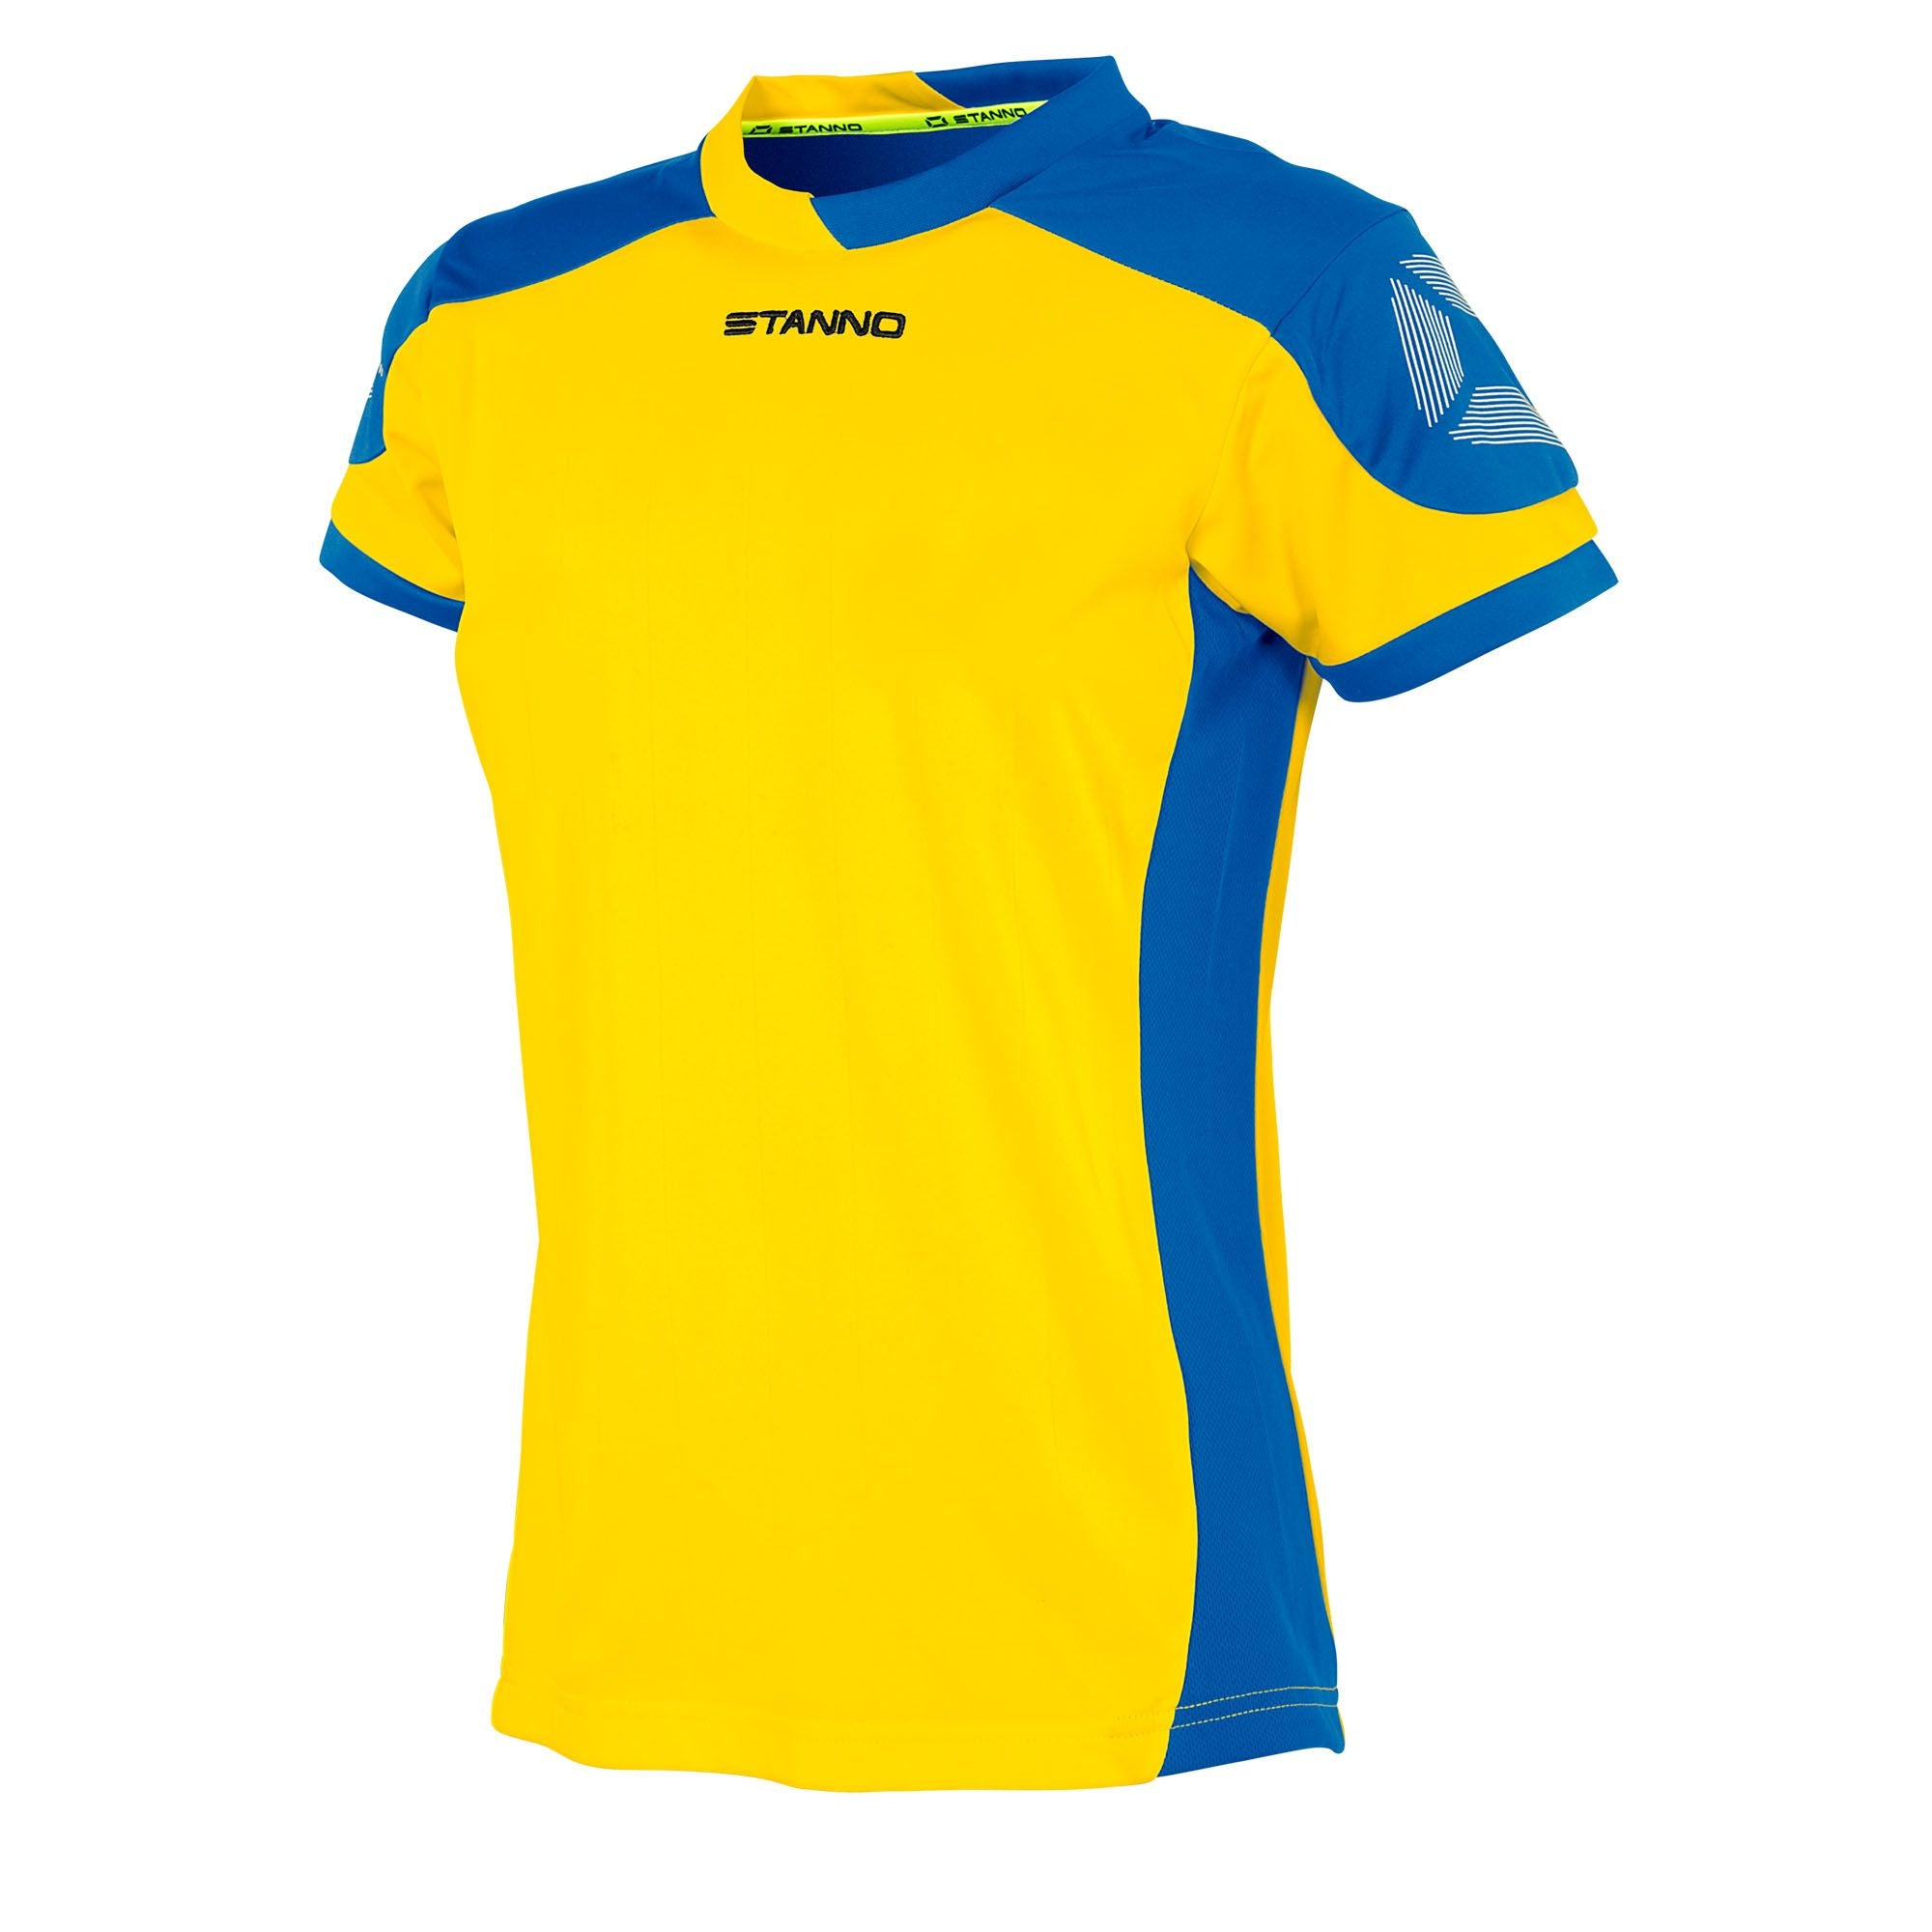 Stanno Campione ladies fit short sleeved shirt in yellow with contrast royal blue sleeves and side panels